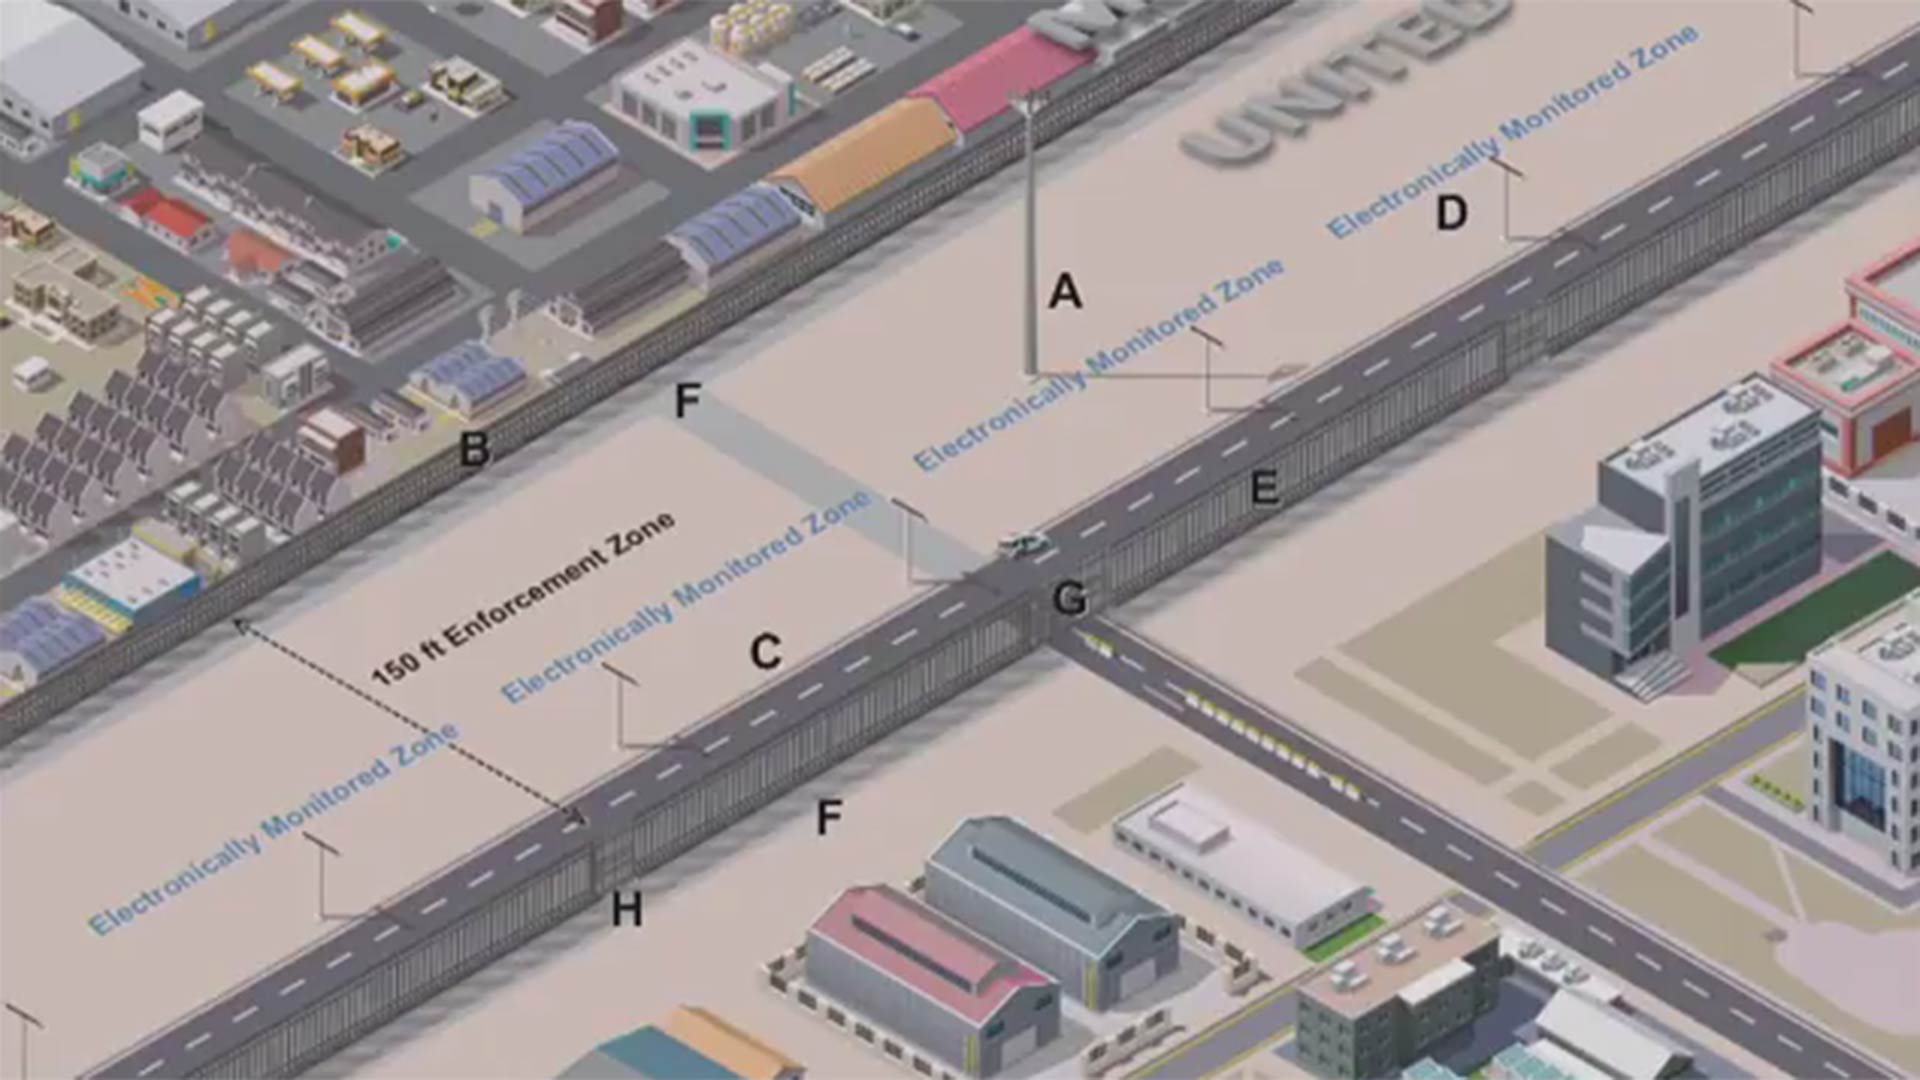 Graphic of the urban design that Customs and Border Protection wants to build in parts of the San Diego Sector.